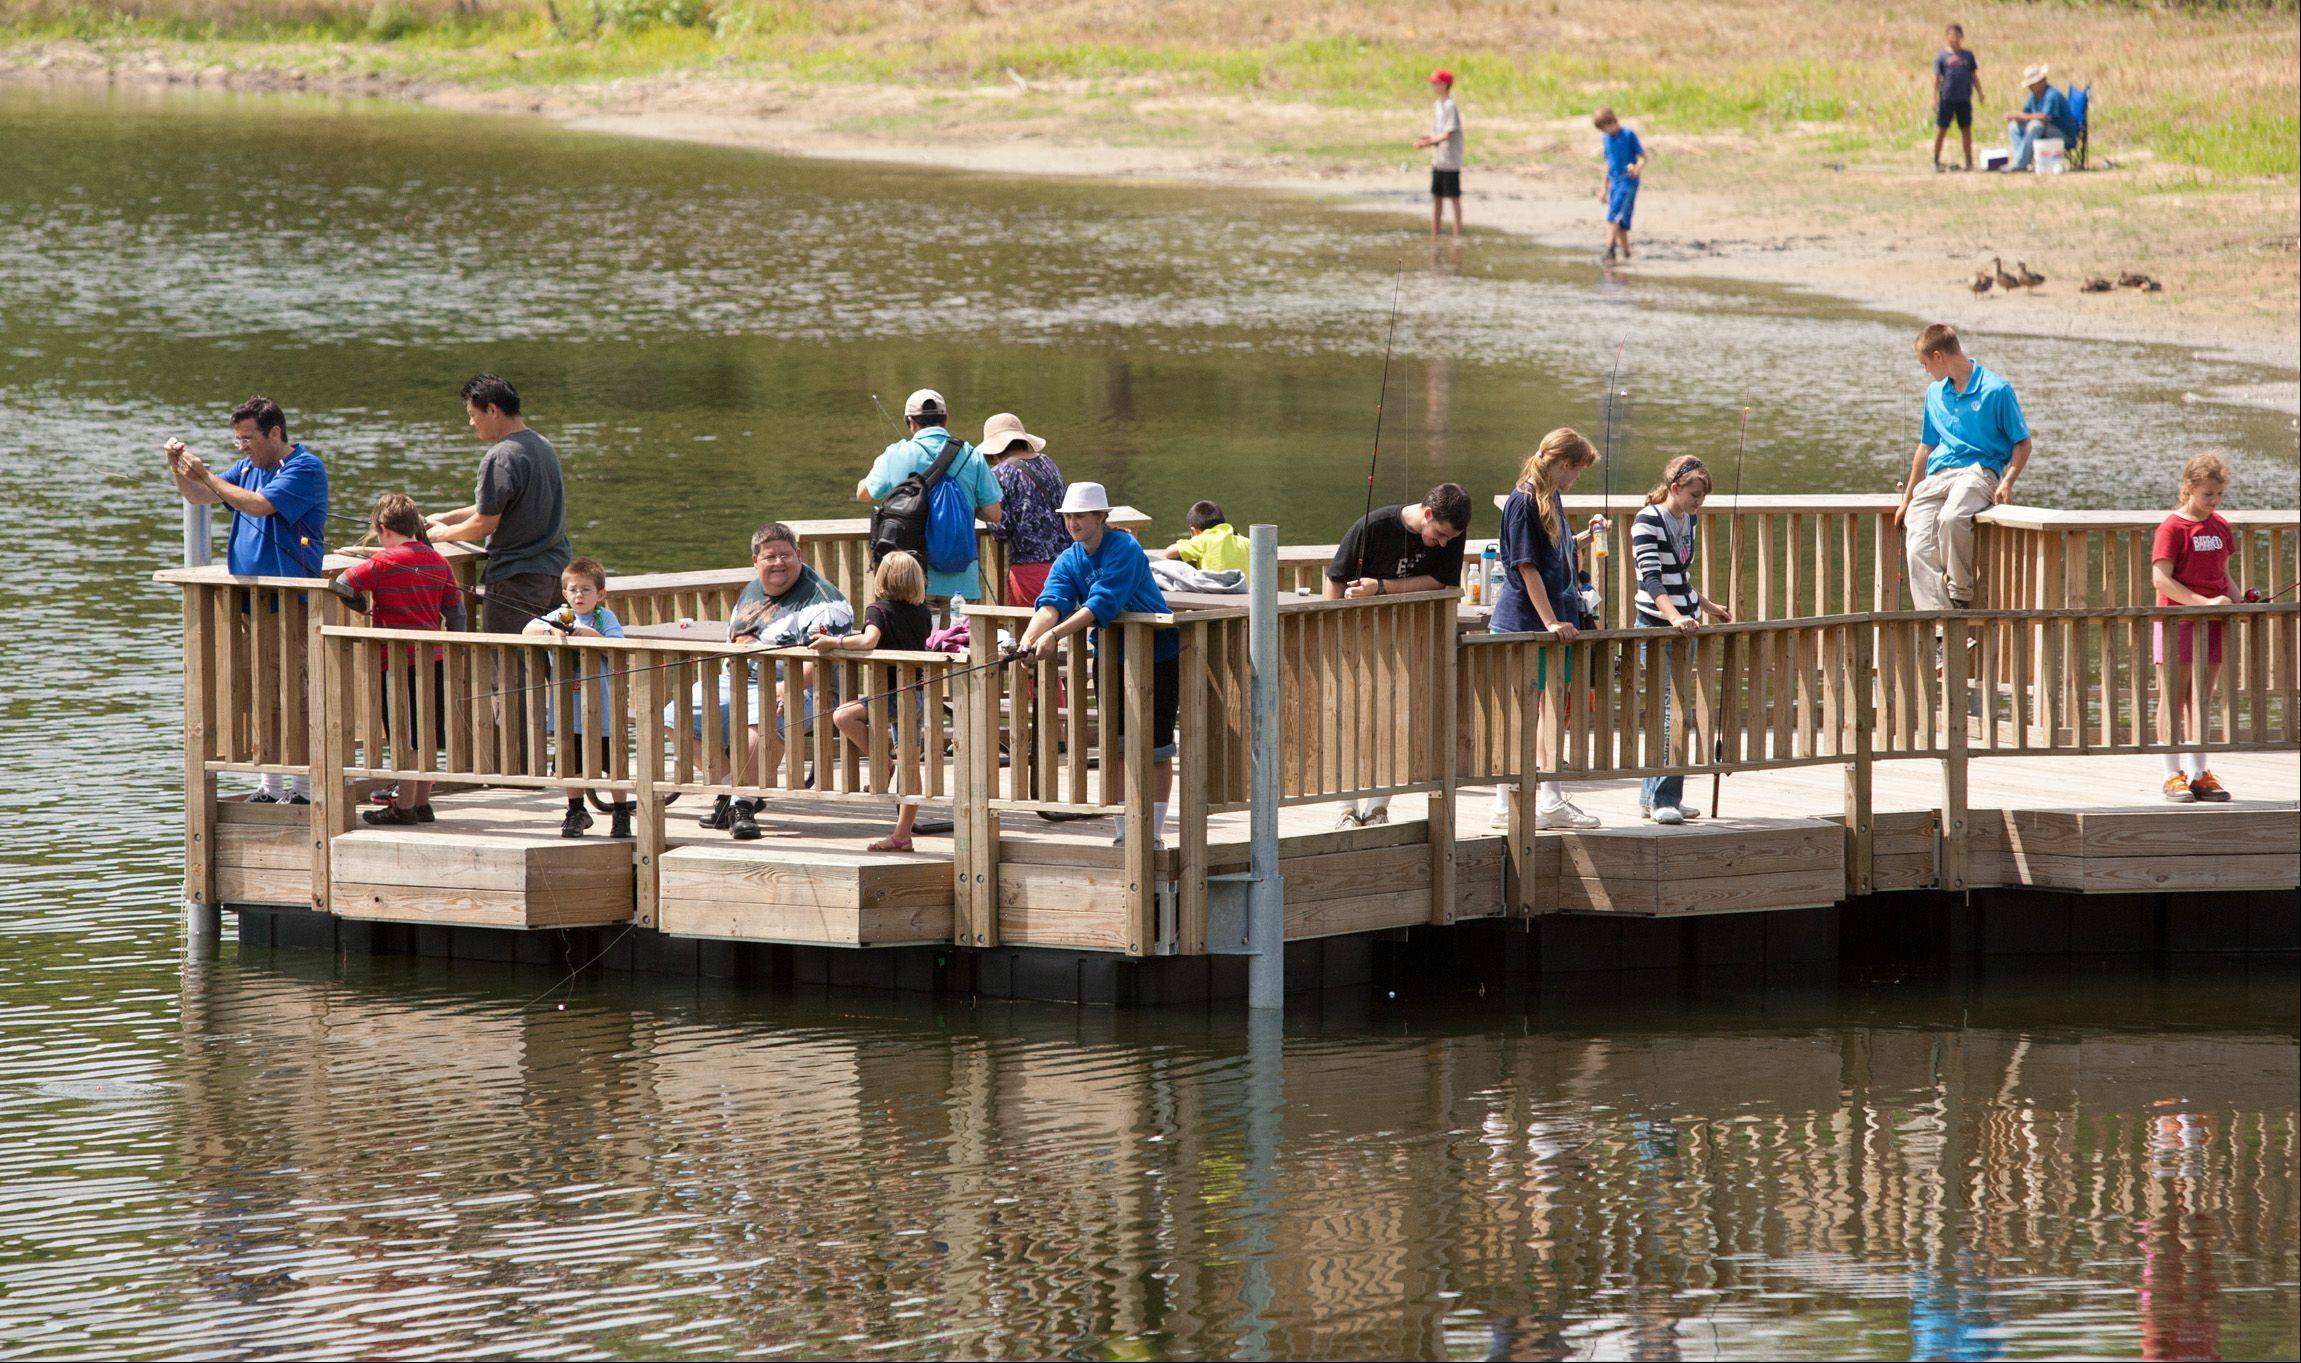 Daniel White/dwhite@dailyherald.comThe DuPage County Forest Preserve opens a handicapped-accessible fishing pier at the Blackwell Forest Preserve.